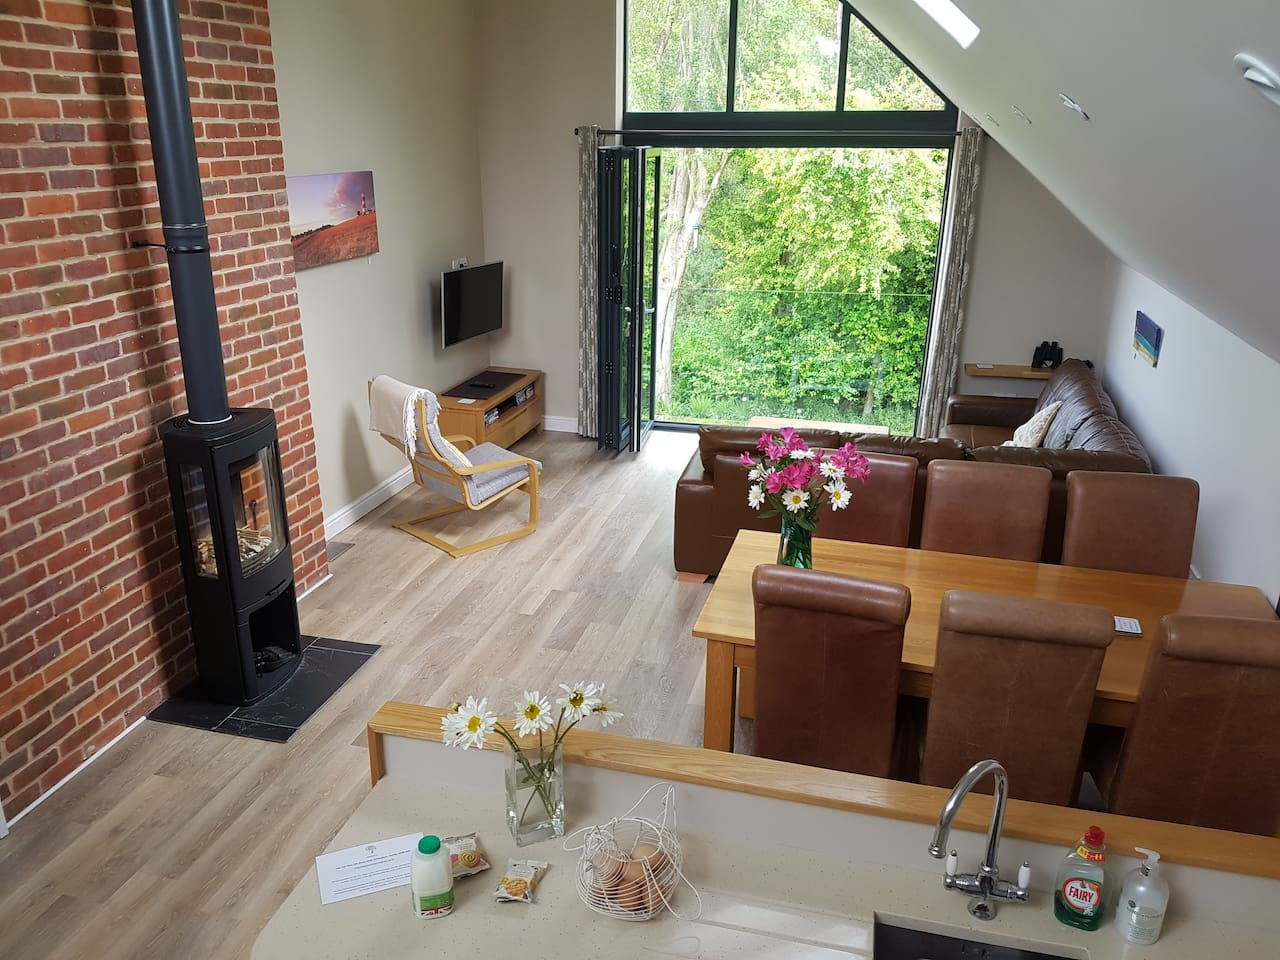 Reverse living - Lounge/ Diner/ Kitchen with a Tree Top View out the by-fold doors perfect for watching birds and wildlife or just enjoying the view. Sunny or raining just lovely